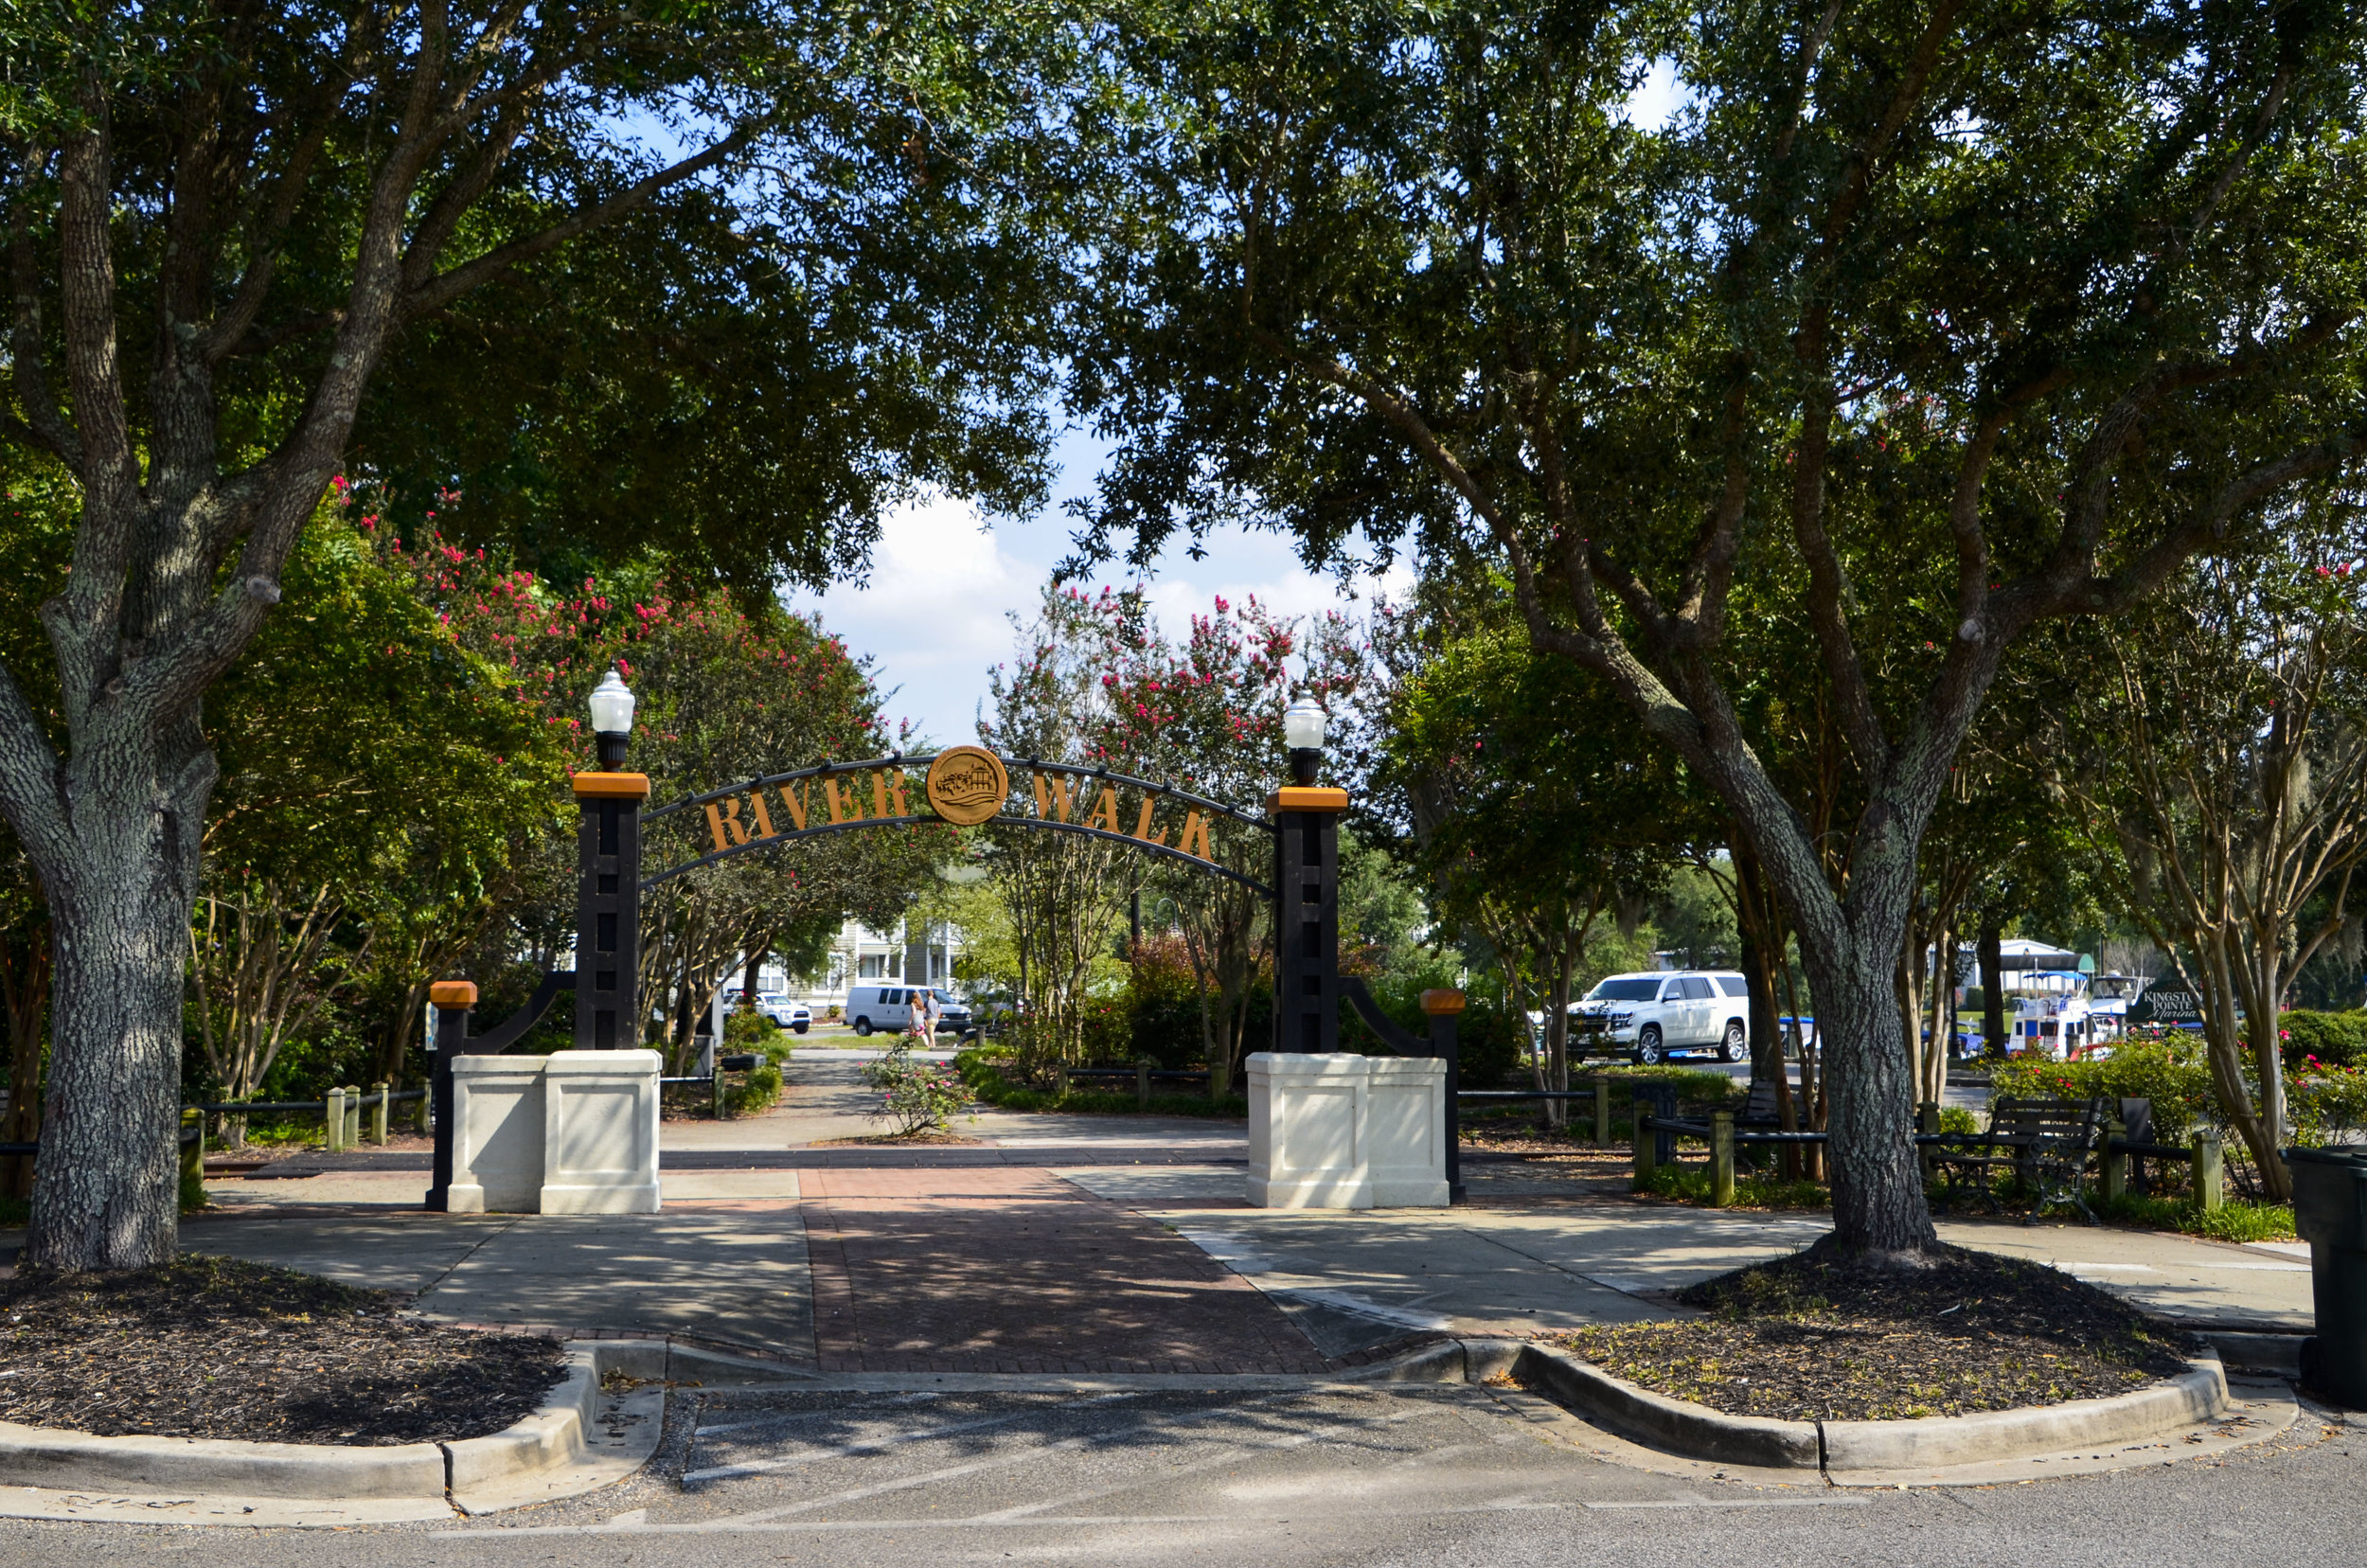 The Riverwalk in historic downtown Conway draws visitors and locals alike to experience the beauty of the Waccamaw.